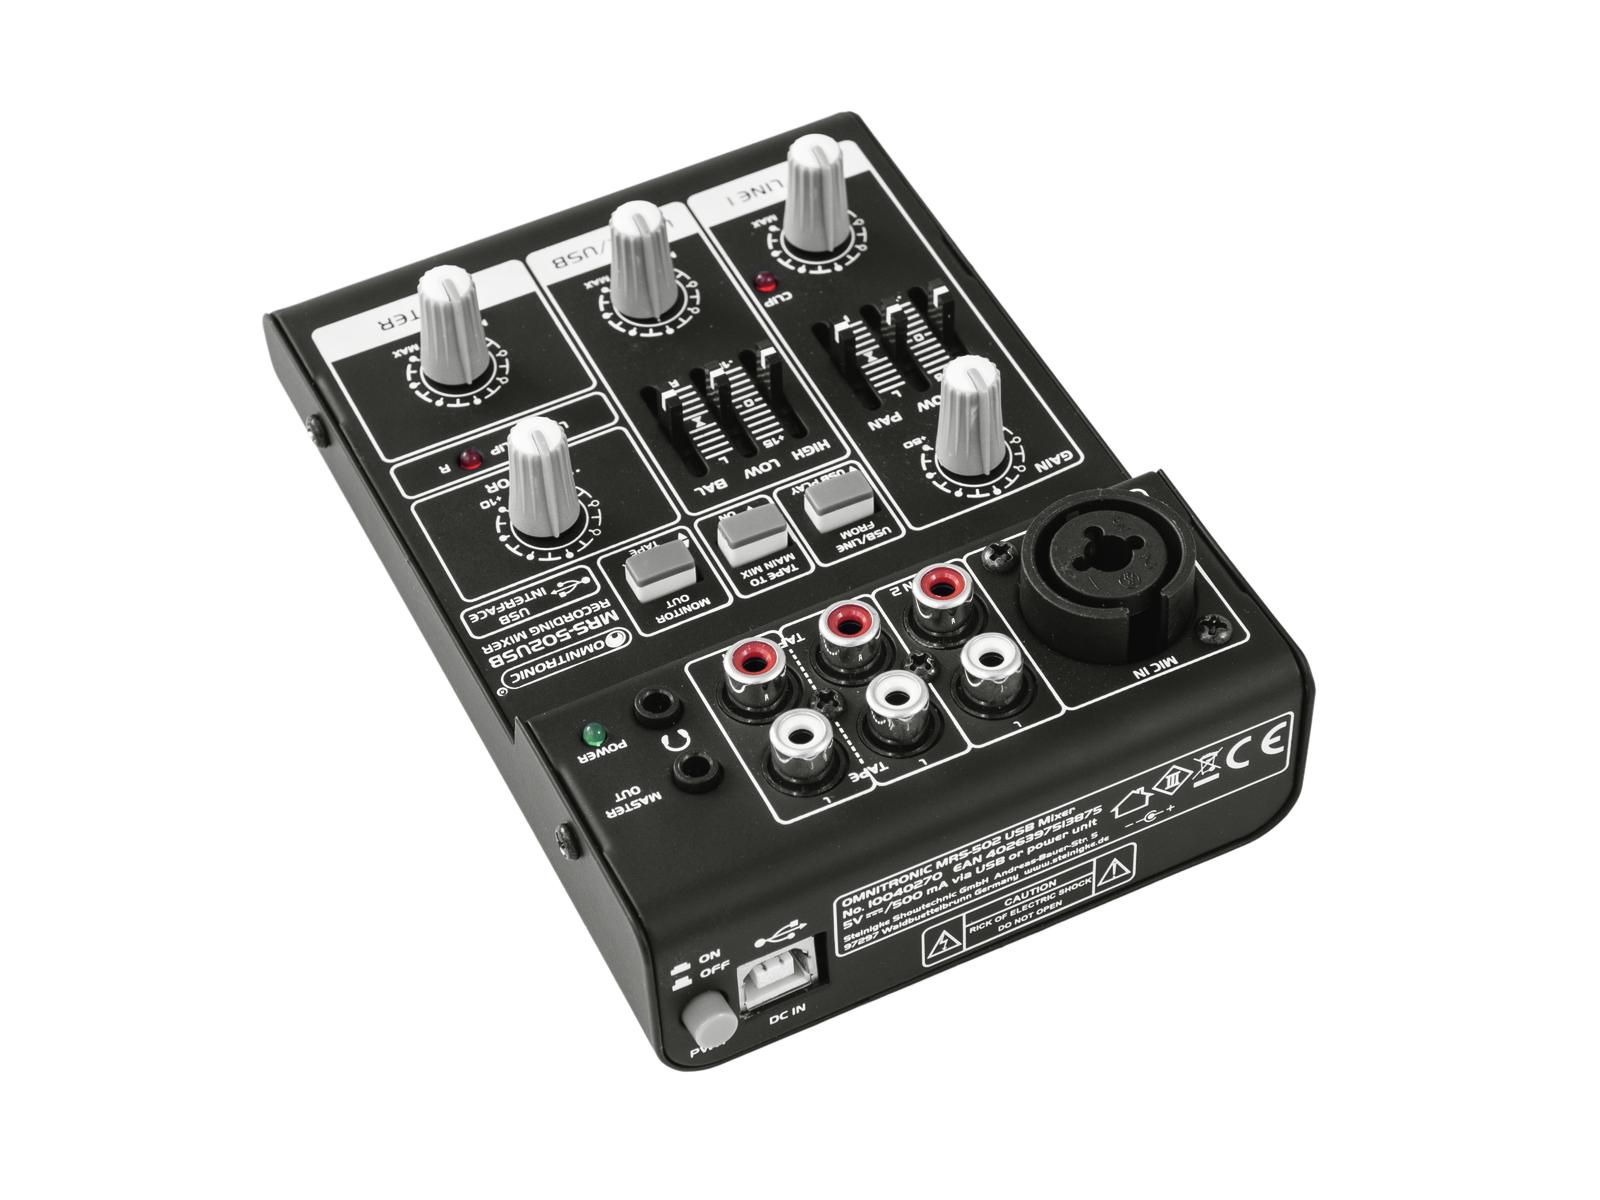 Mixer per dj usb interfaccia audio pc mac 2 canali OMNITRONIC MRS-502USB